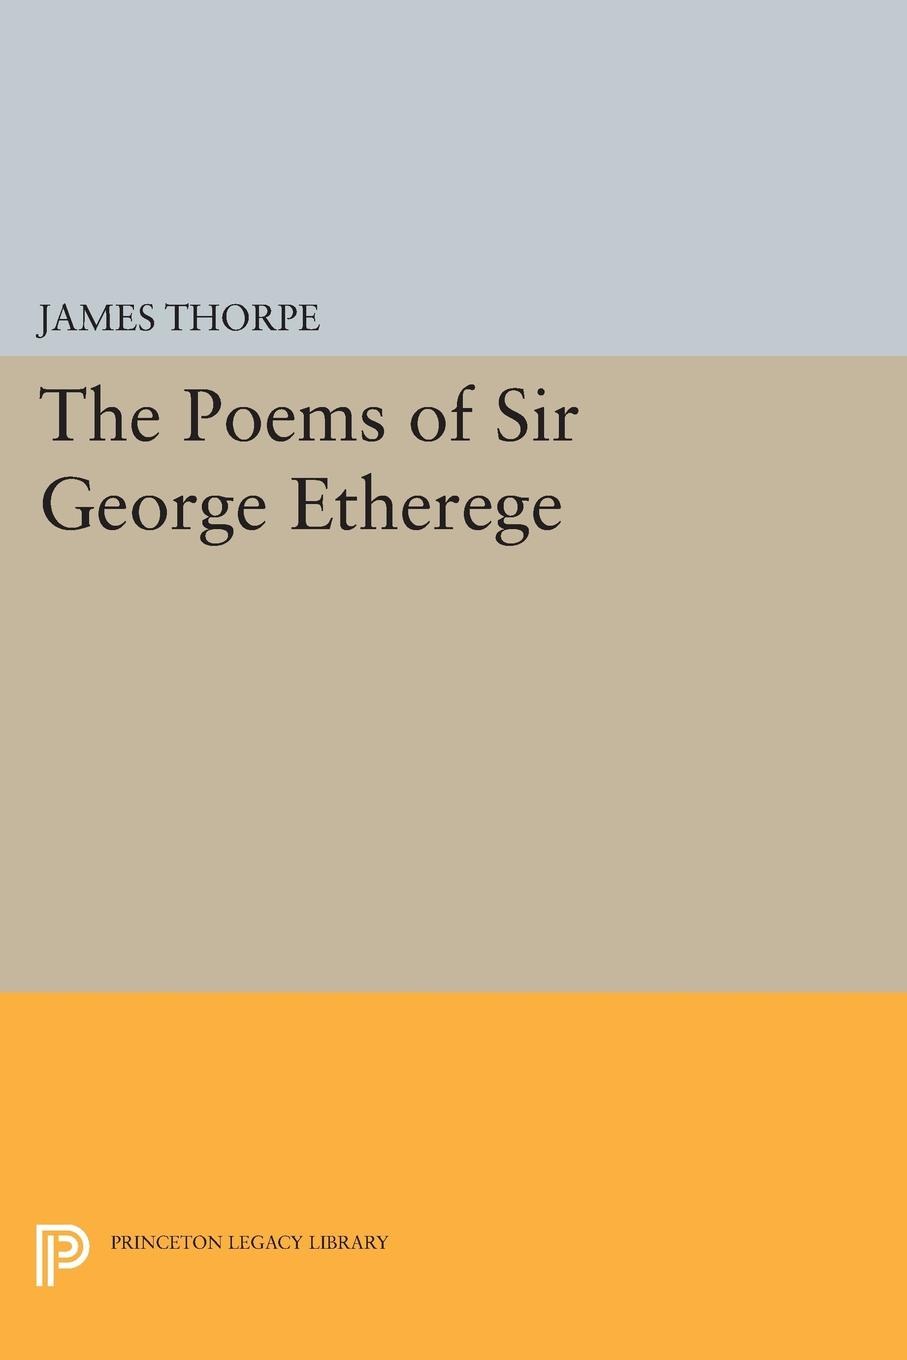 The Poems of Sir George Etherege ajurmotts g zannotti william n joyce fishing derby poems in princeton tufts